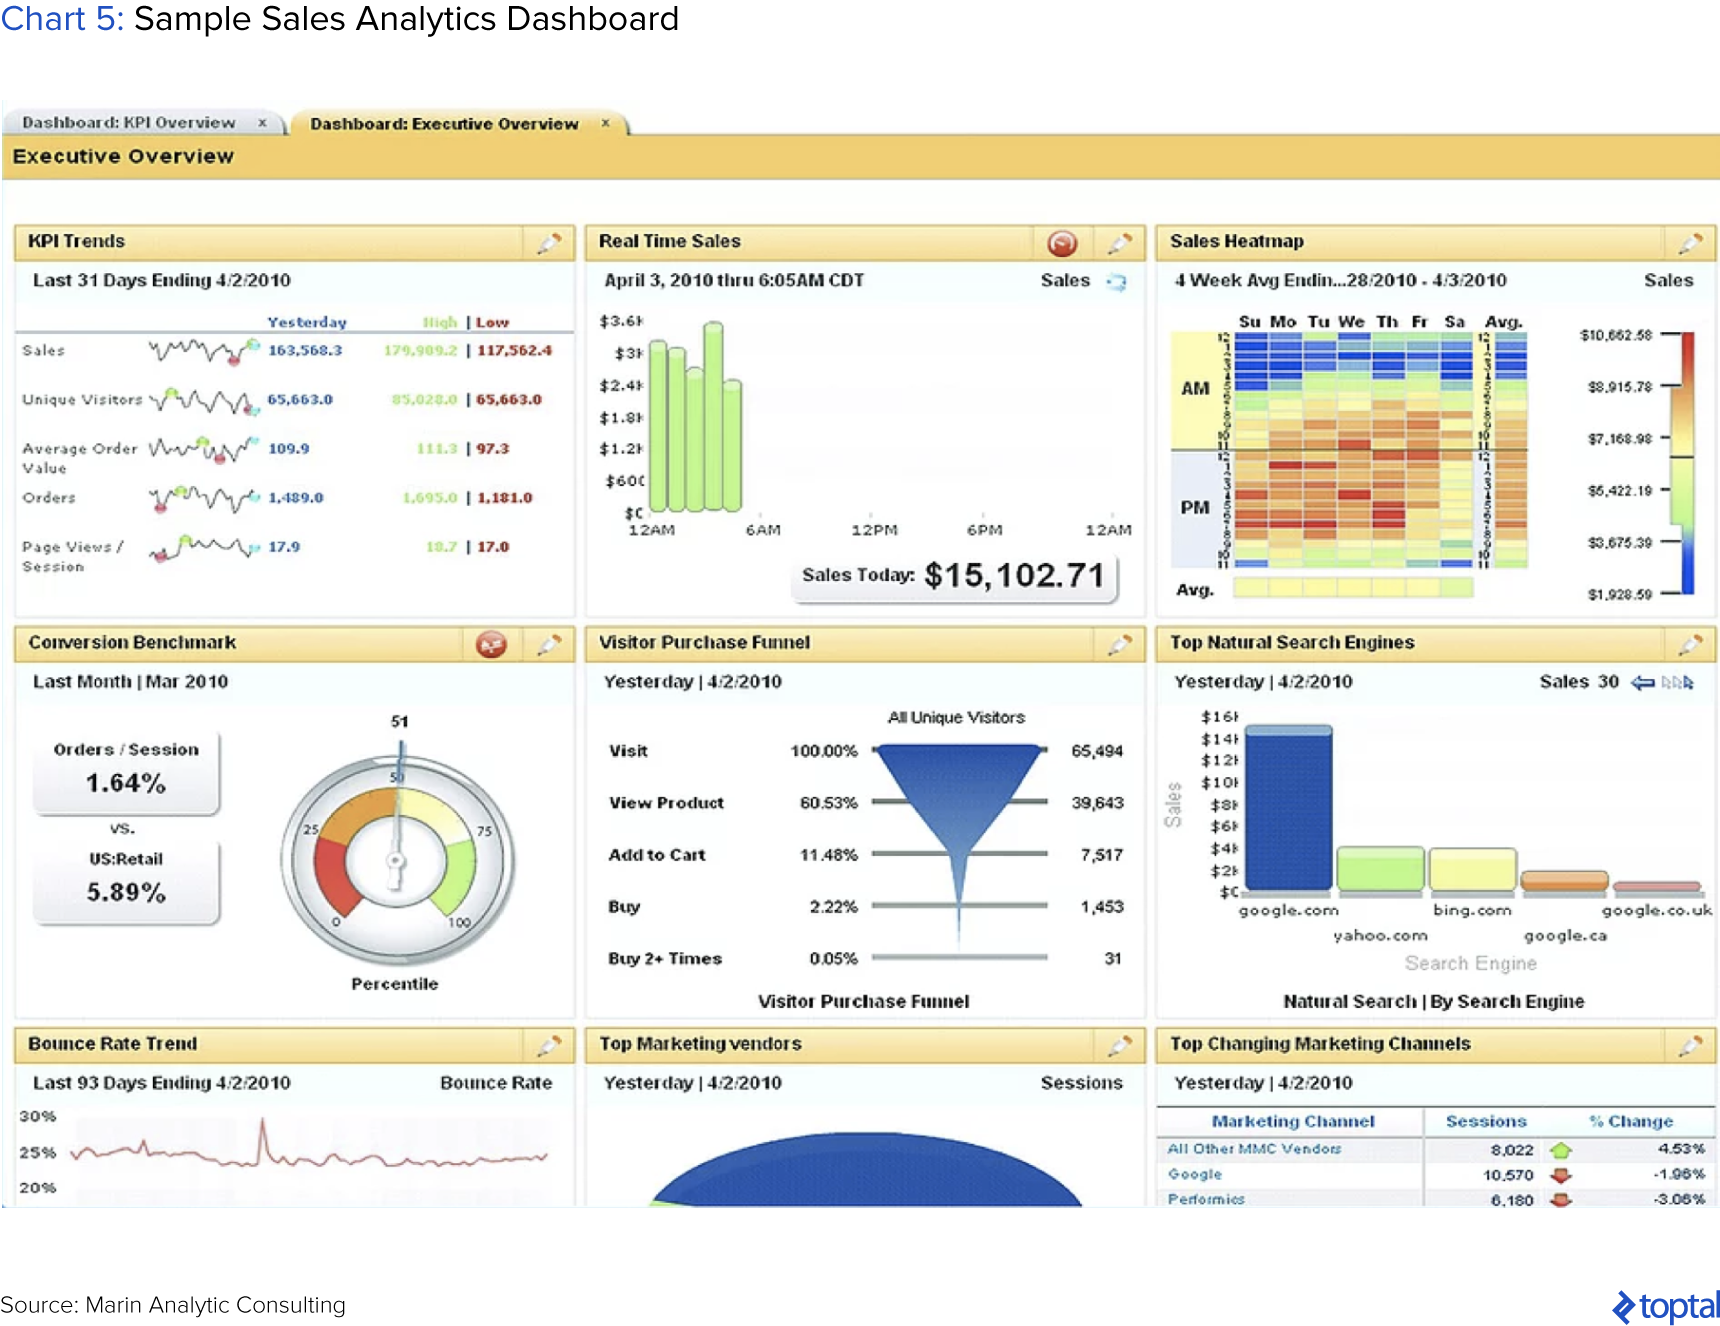 Chart 5: Sample Sales Analytics Dashboard